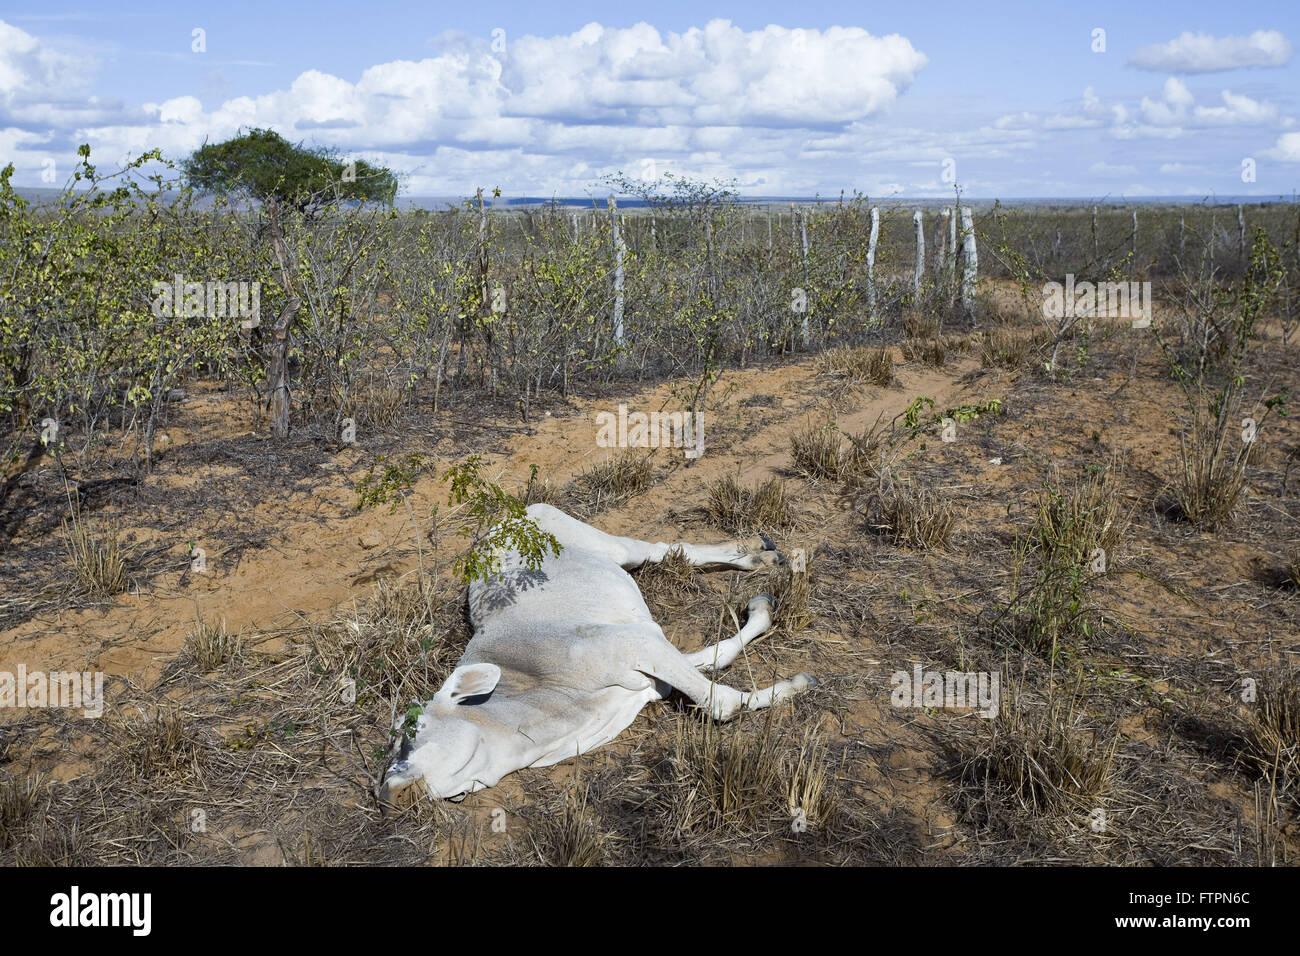 Calf killed in area affected by drought in Bahia - Stock Image